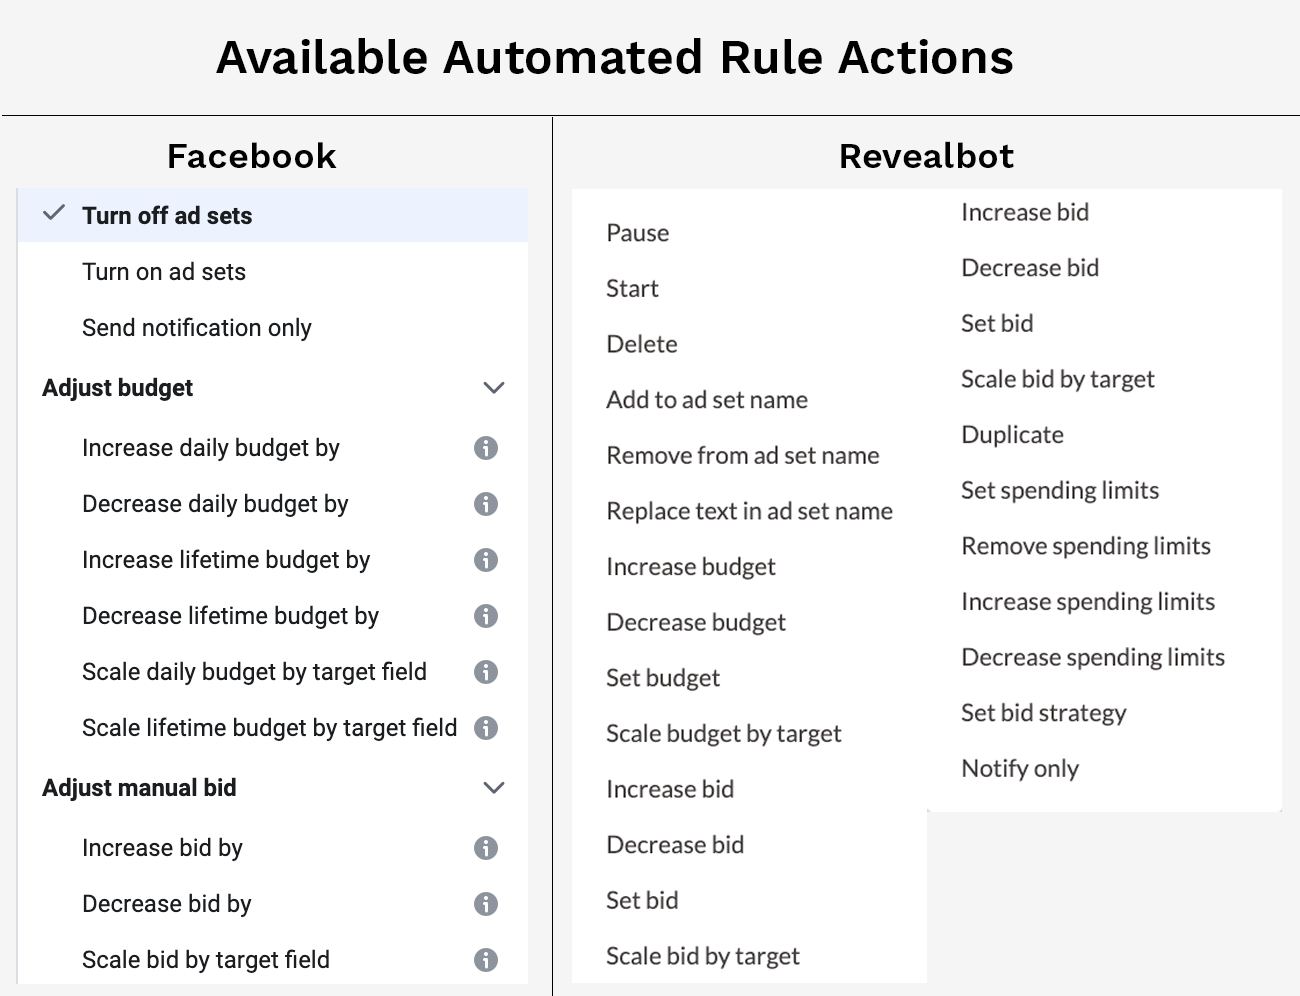 Different automated rule actions between Facebook's native automated rules and Revealbot